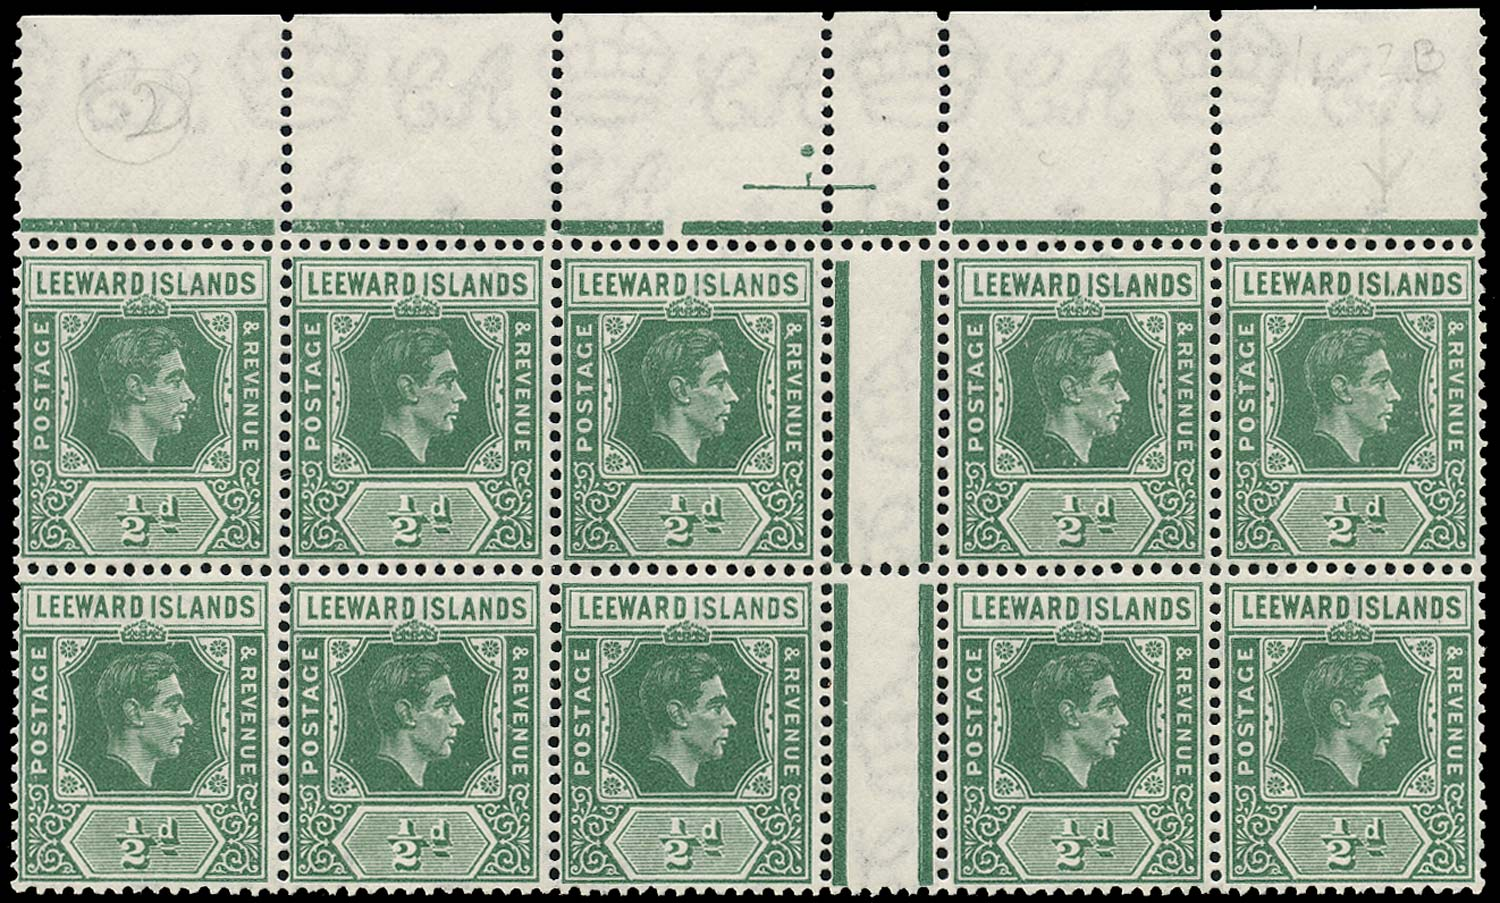 LEEWARD ISLANDS 1938  SG96a Mint ½d emerald variety ISI.ANDS unmounted